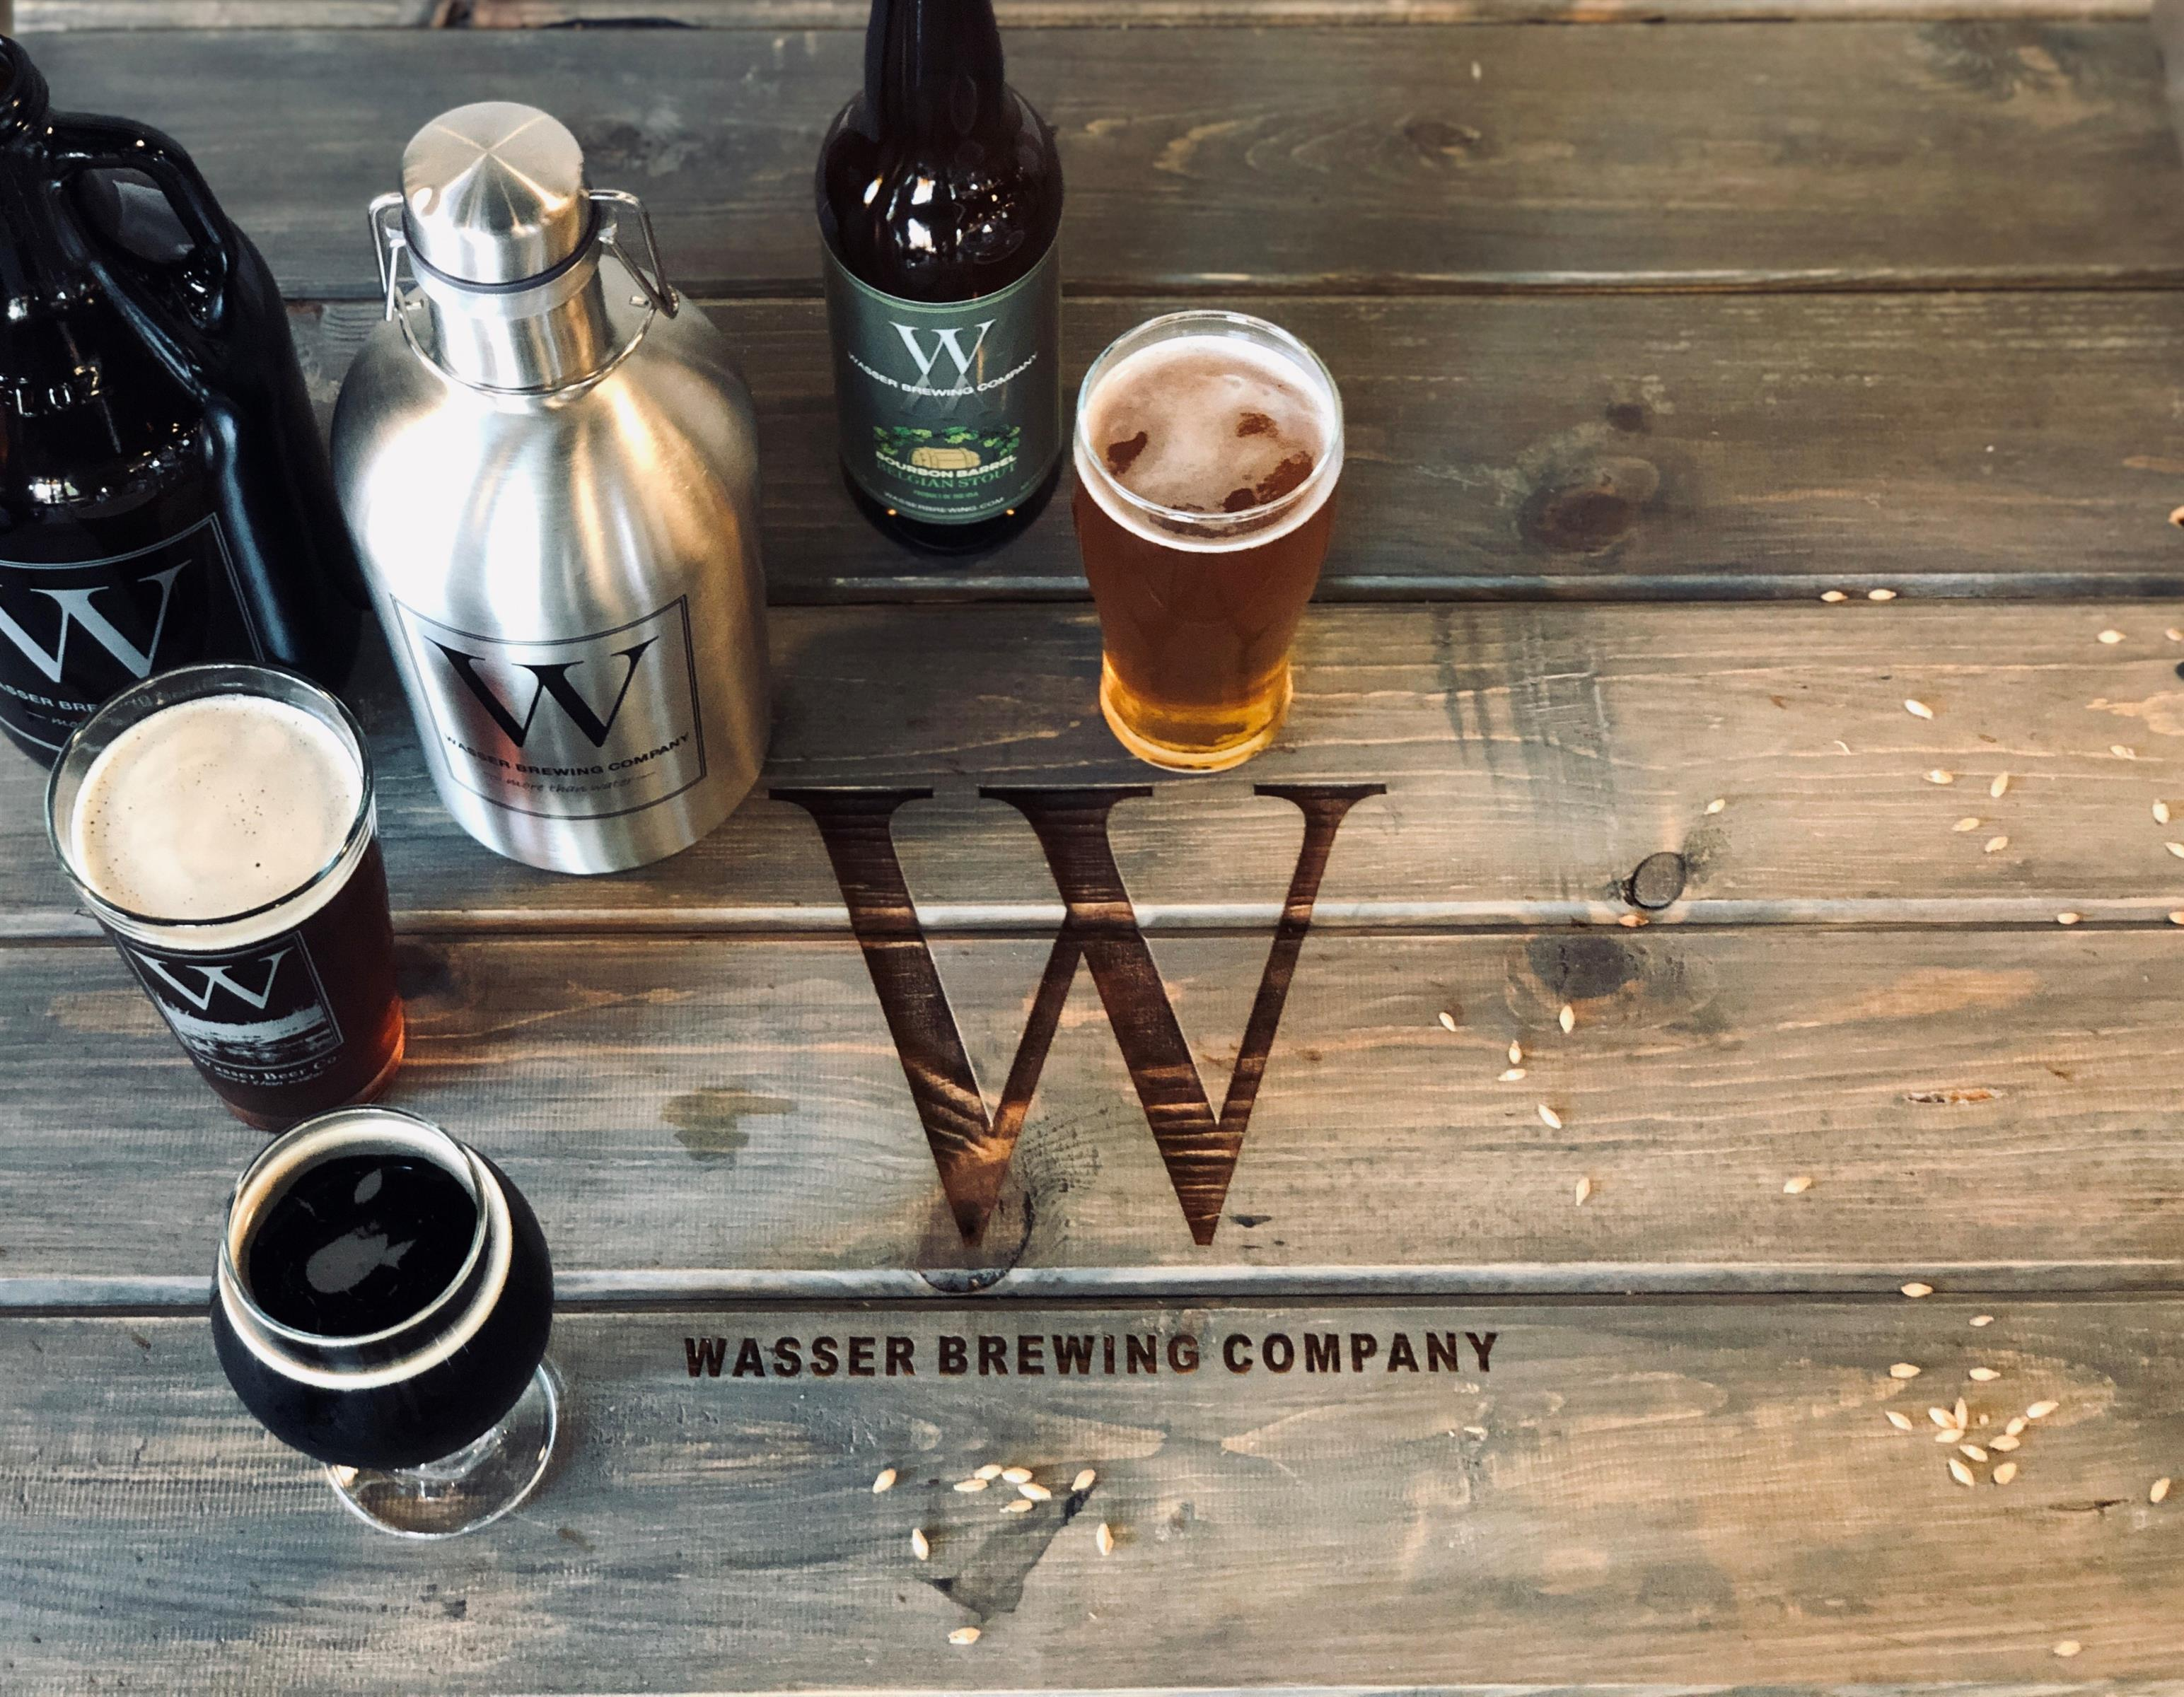 several wasser beer bottles and a pint on a wood table with the wasser brewing co sign engraved